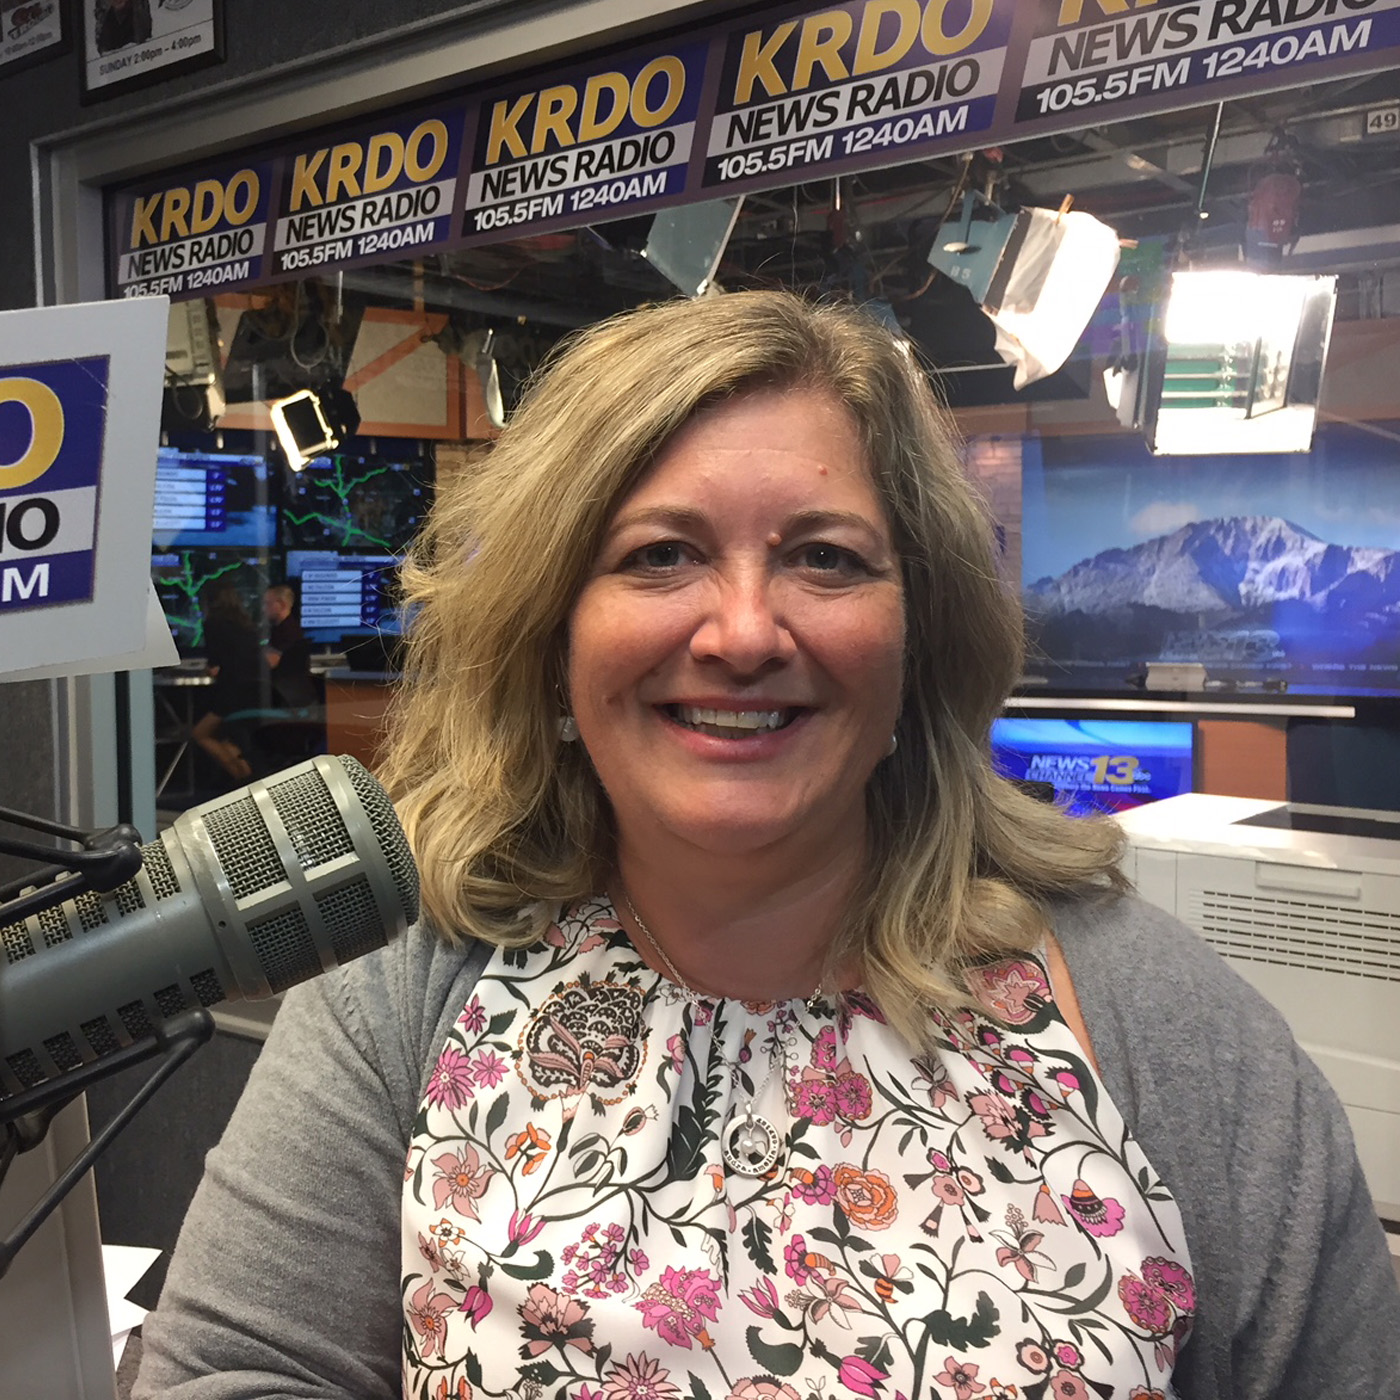 KRDO's Morning News - May 29, 2019